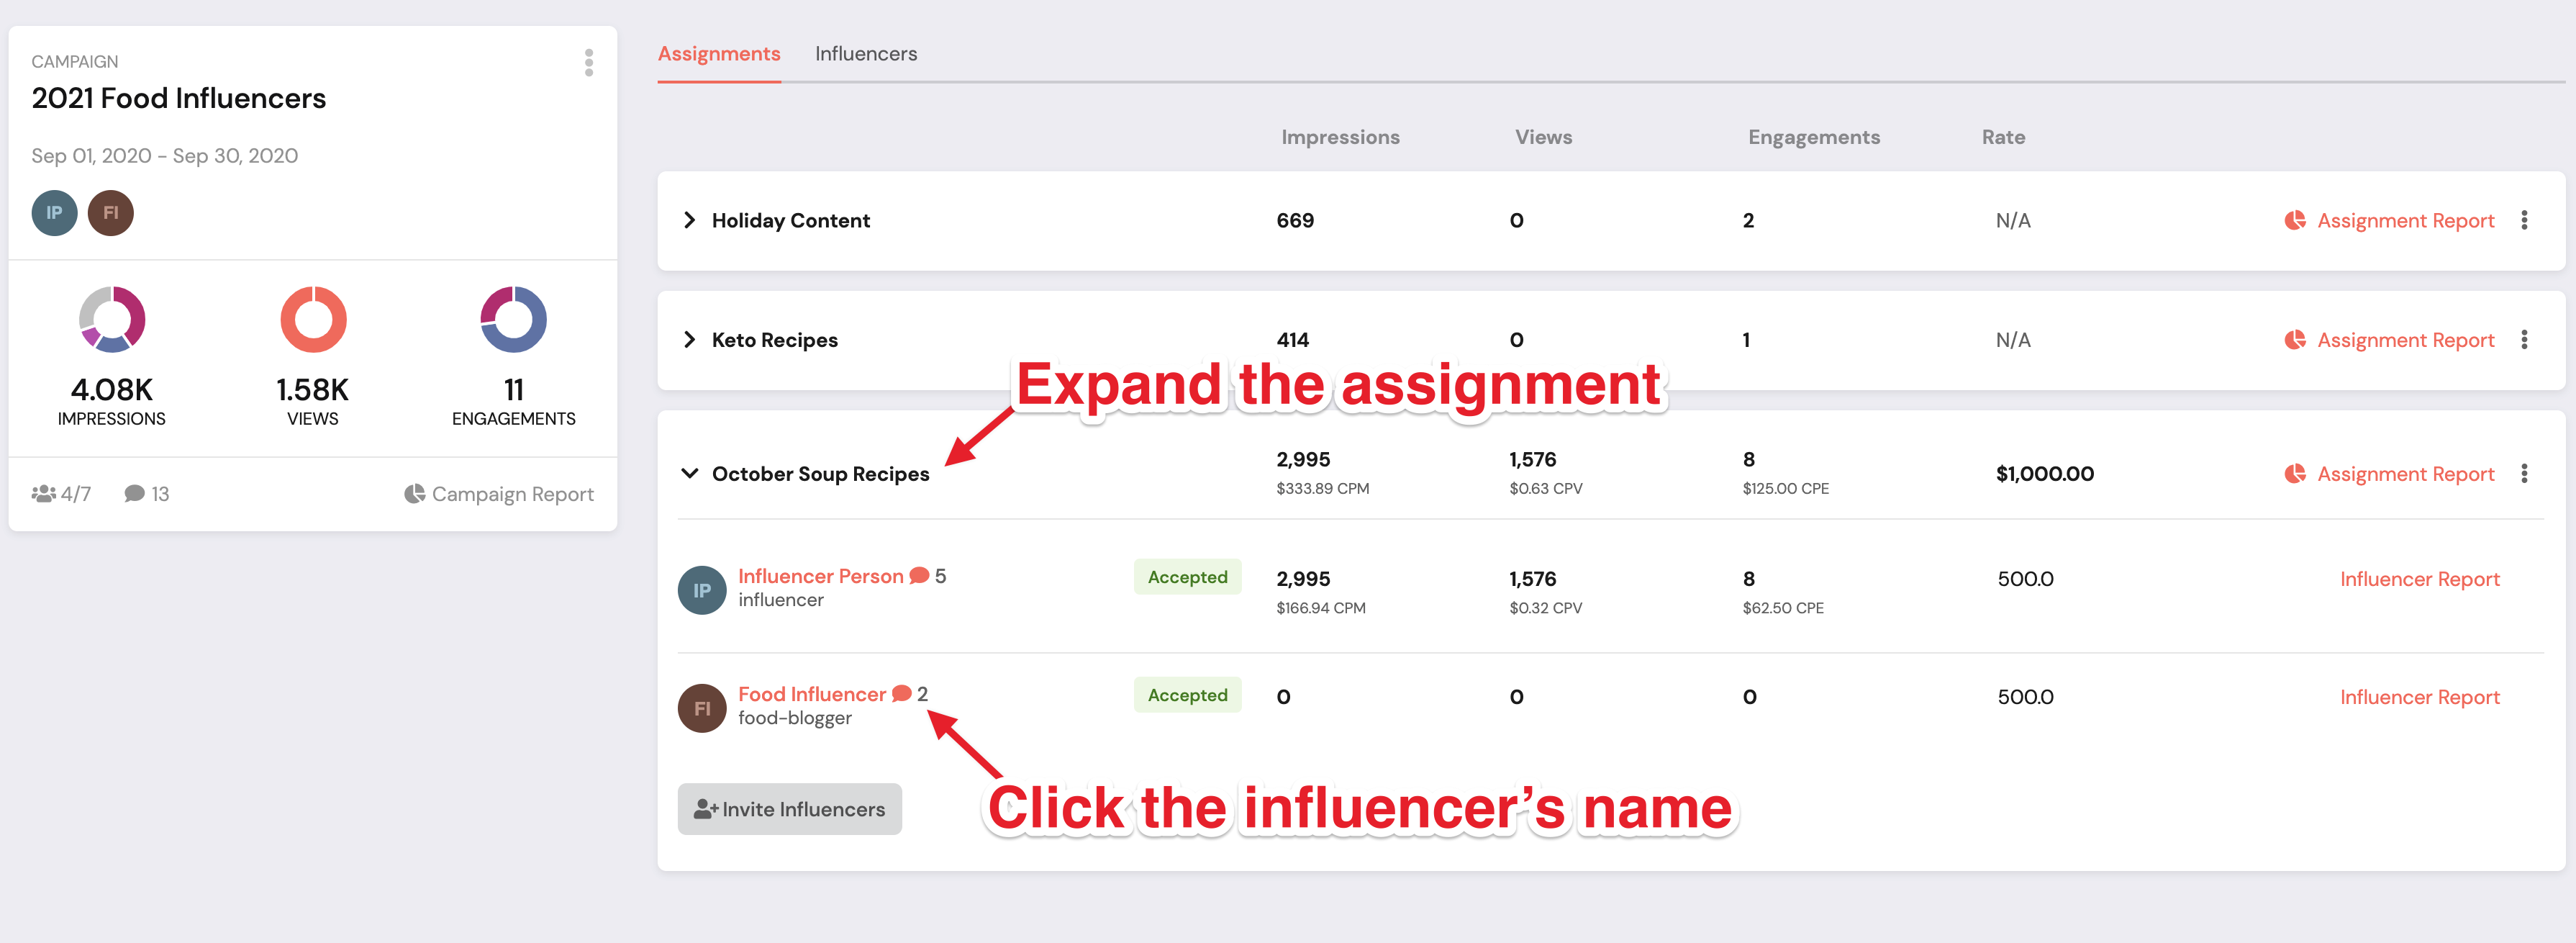 Expand the assignment and click the influencer's name